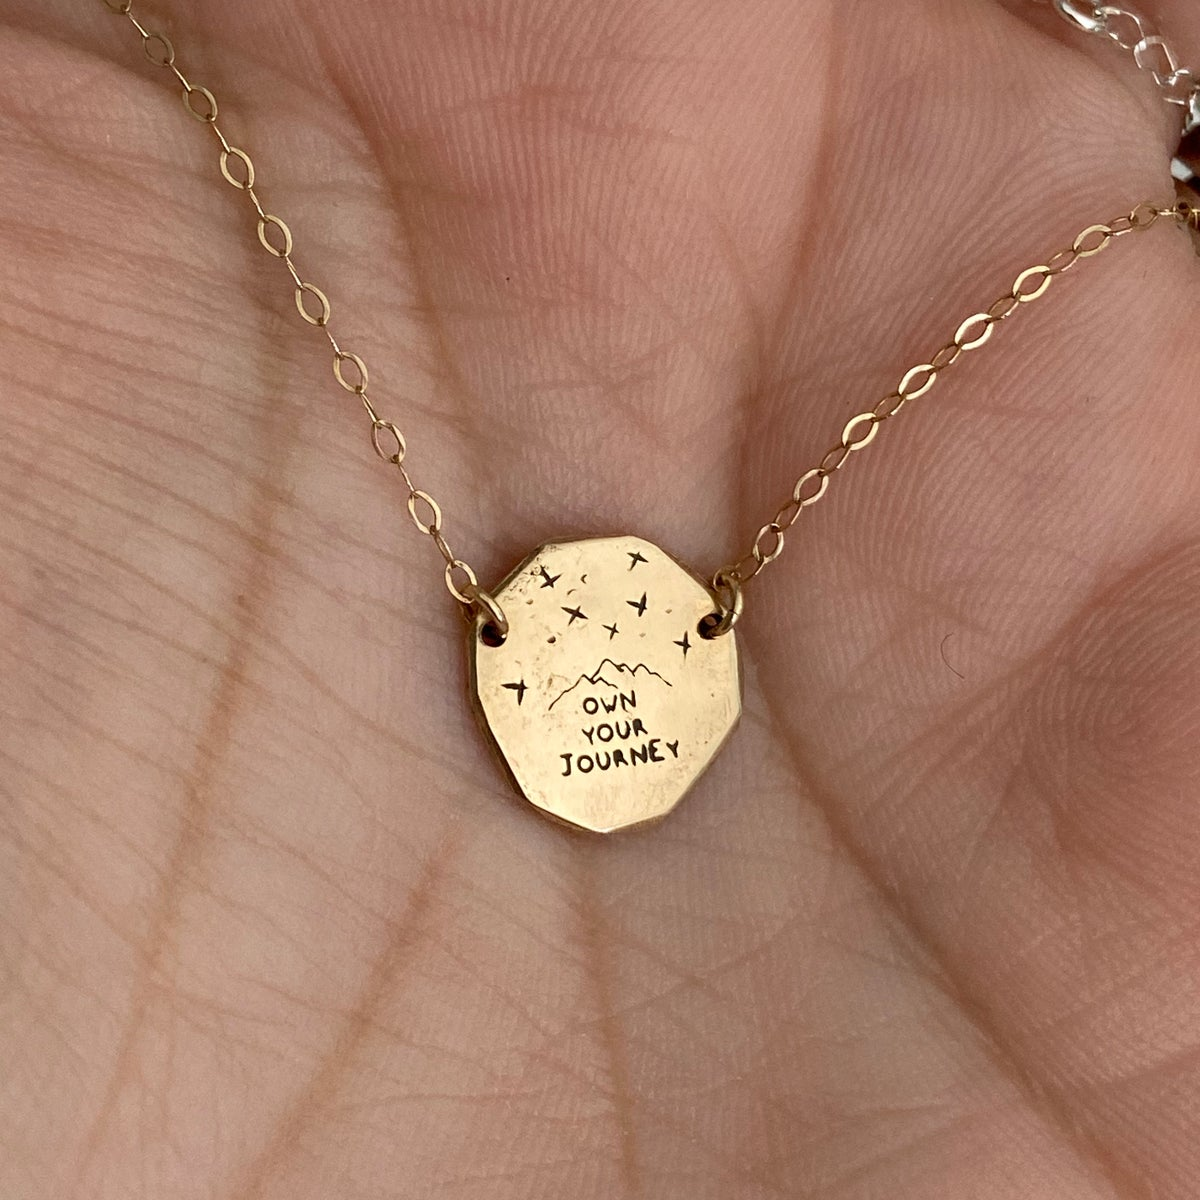 Image of 14k gold coin necklace